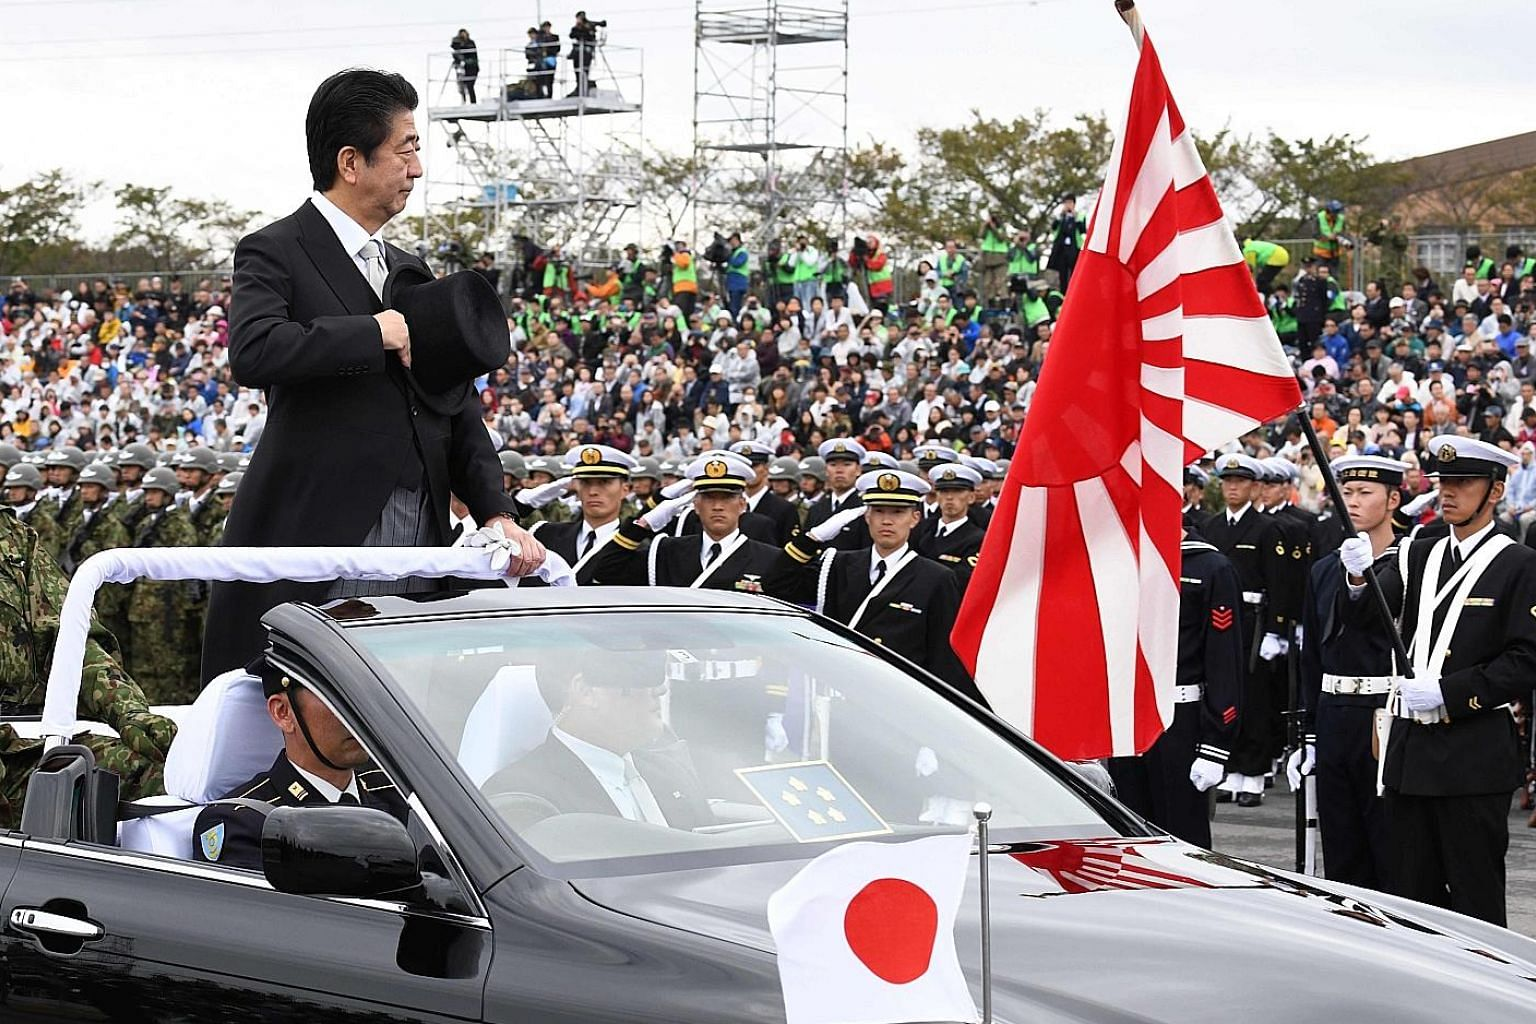 Japanese Prime Minister Shinzo Abe at a military parade in Asaka yesterday. In the poll, citizens of Japan and China see security as a big bugbear in building trust.